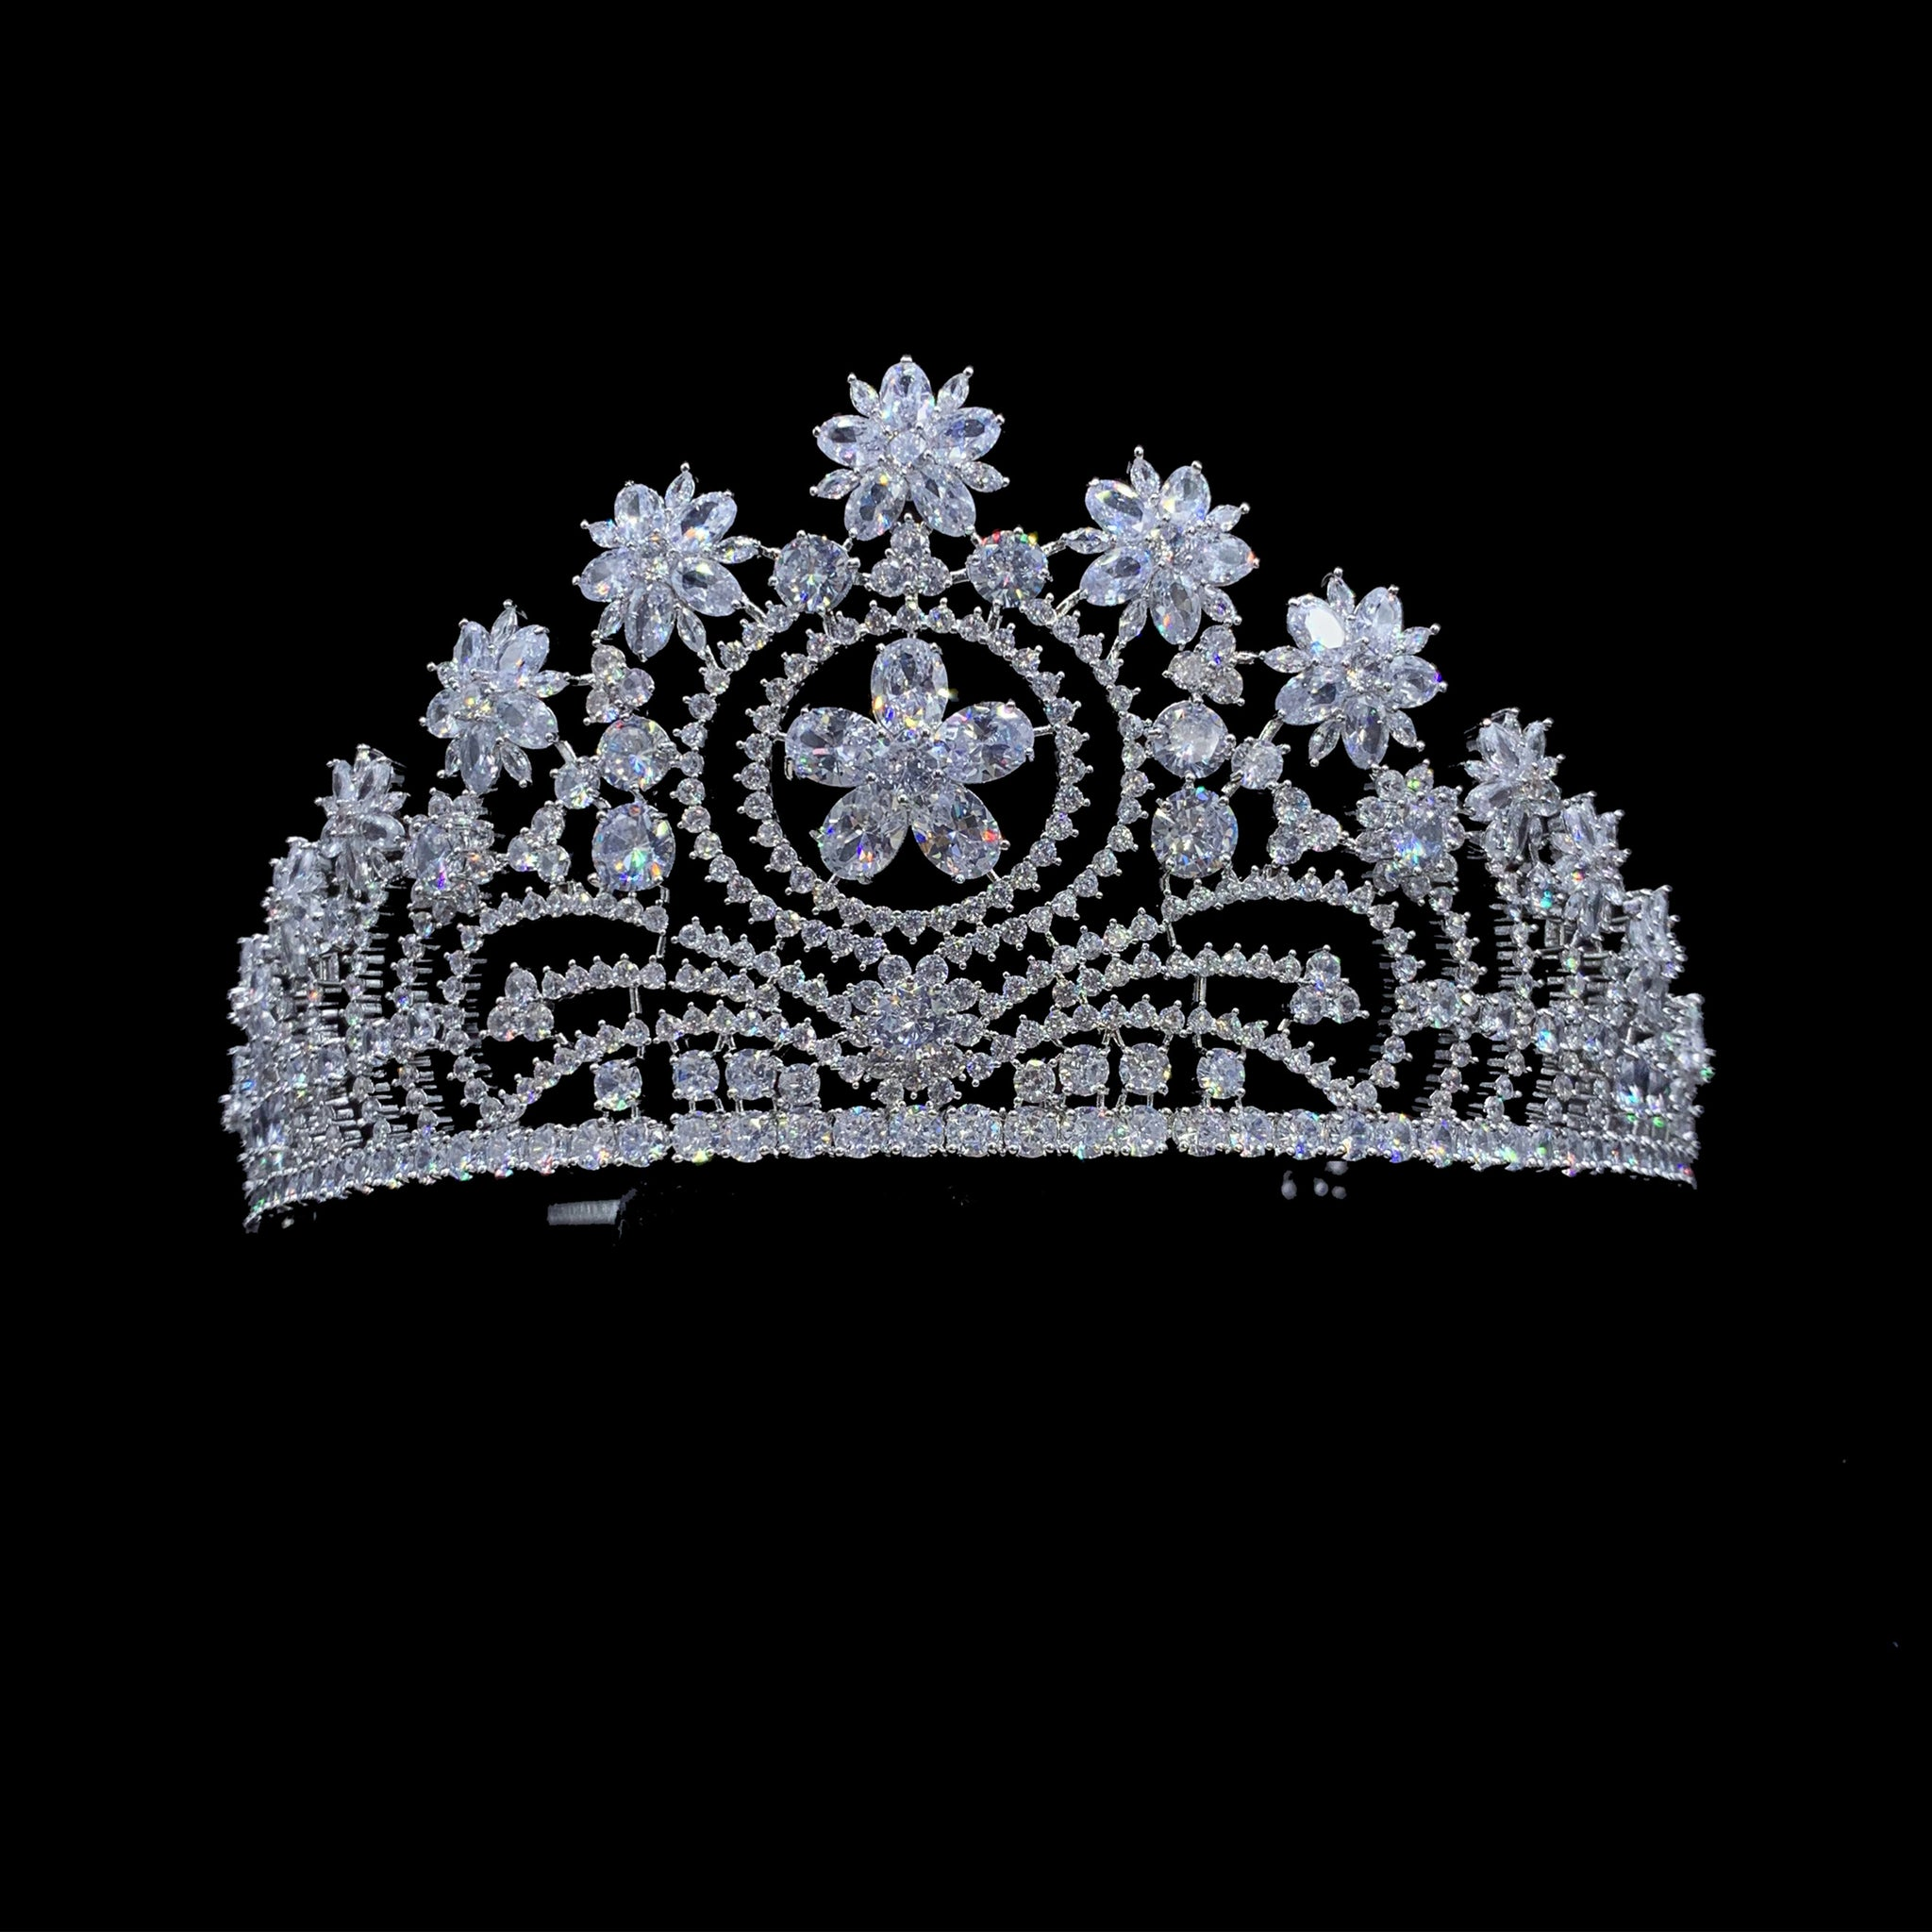 'Exquisite' Flower Tiara - The Royal Look For Less